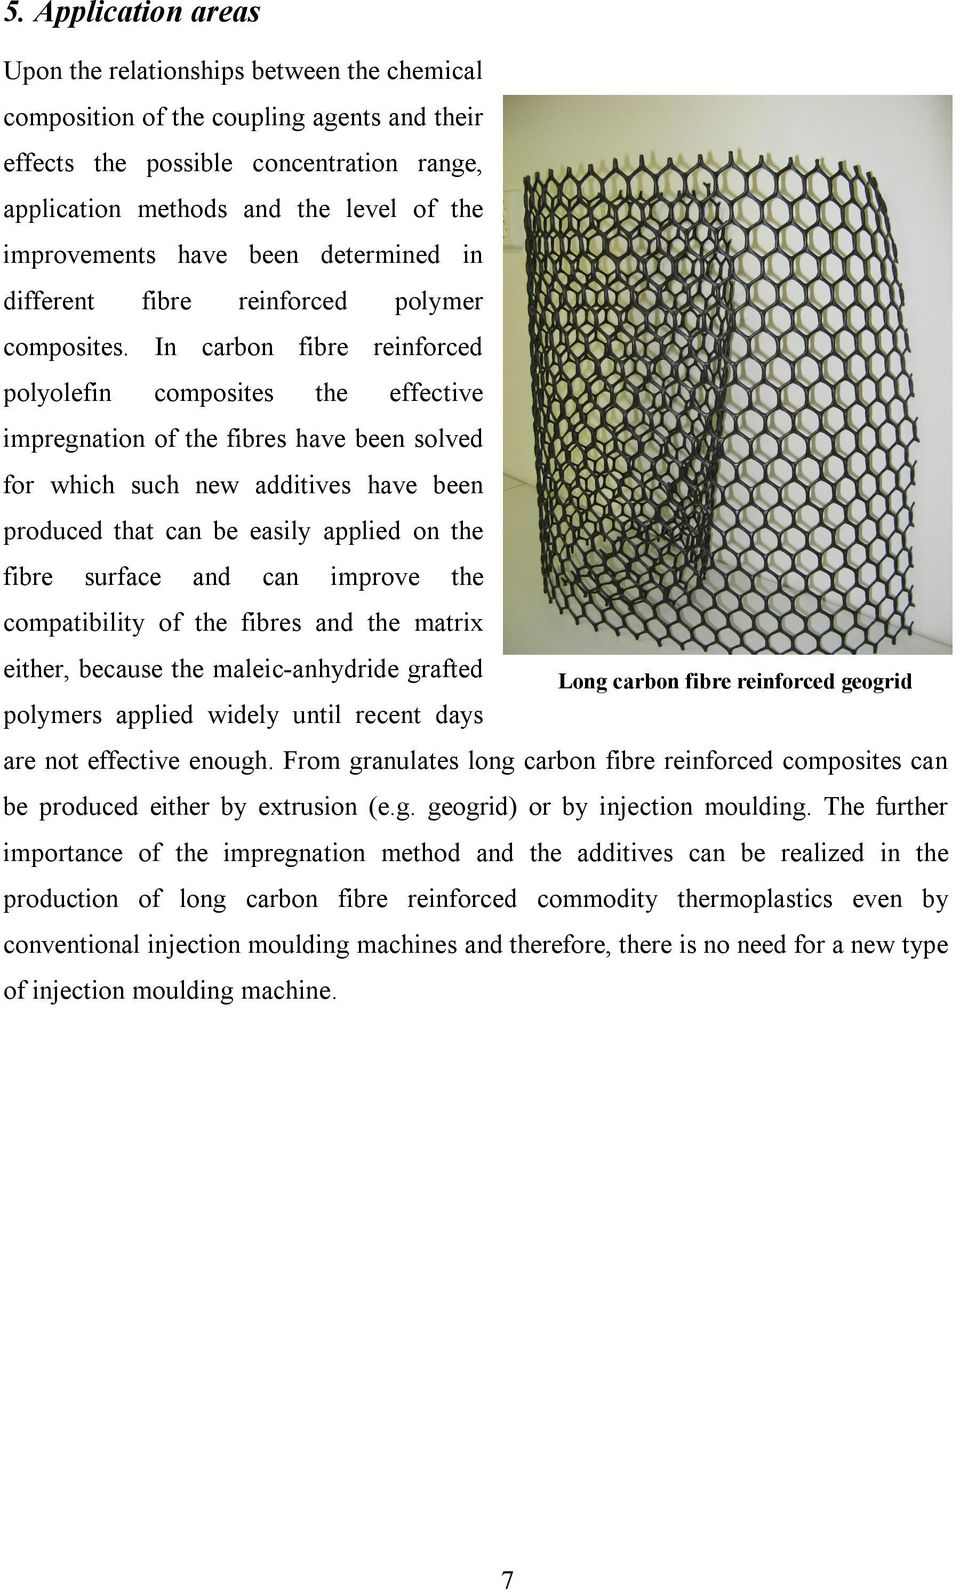 In carbon fibre reinforced polyolefin composites the effective impregnation of the fibres have been solved for which such new additives have been produced that can be easily applied on the fibre